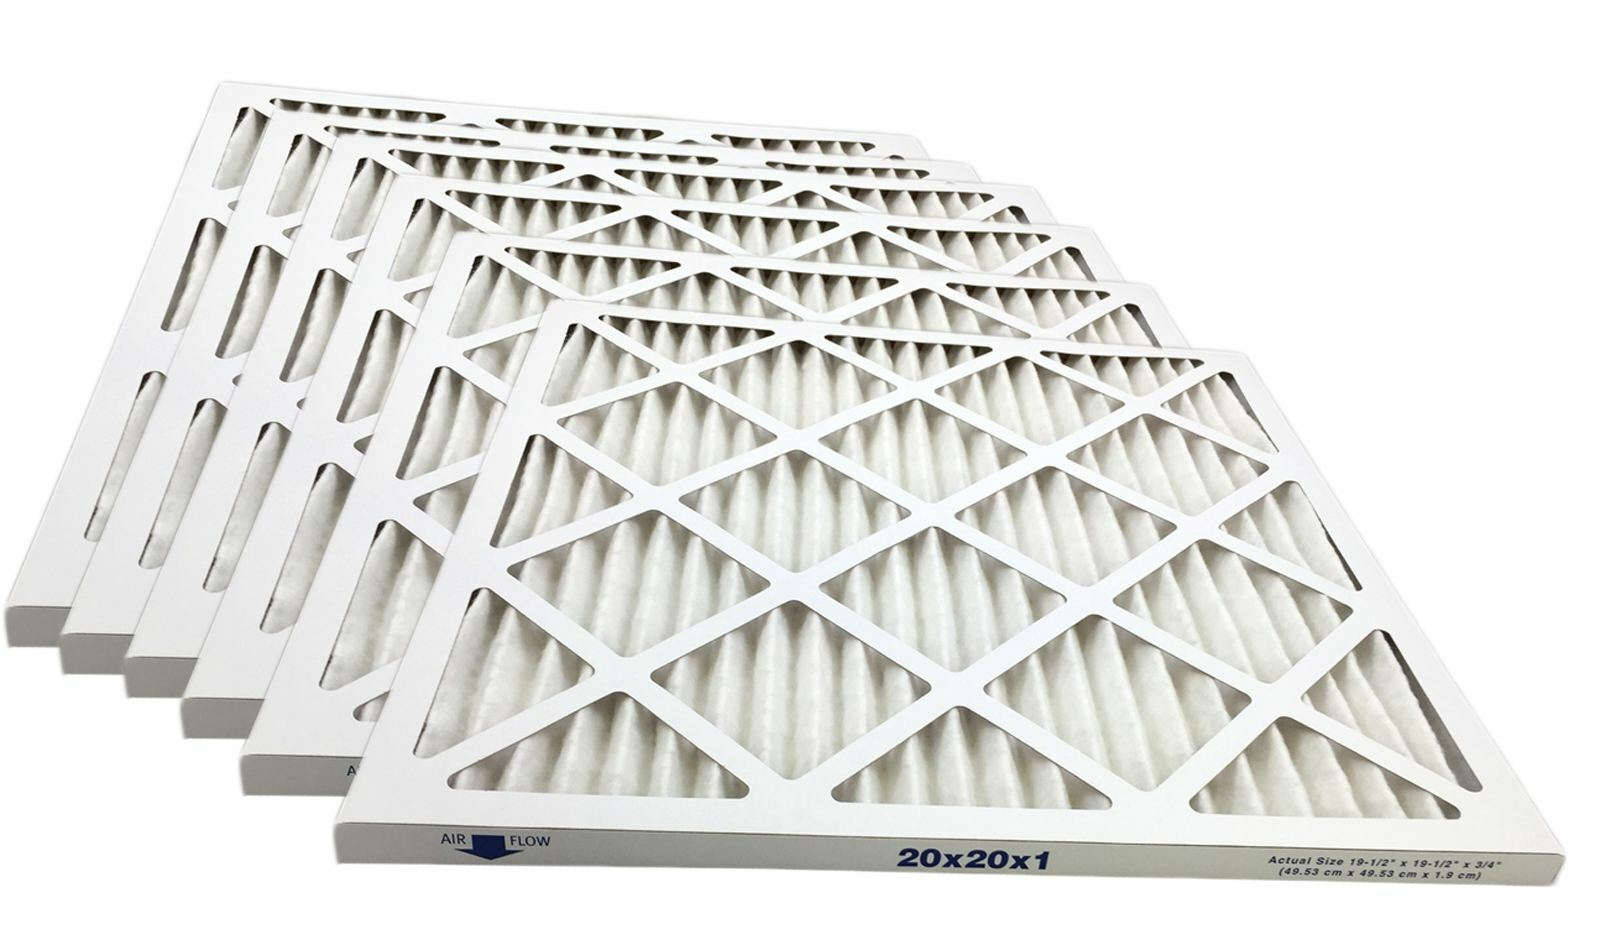 Merv 13 filters are one thing homeowners are requesting to help purify their air at home.